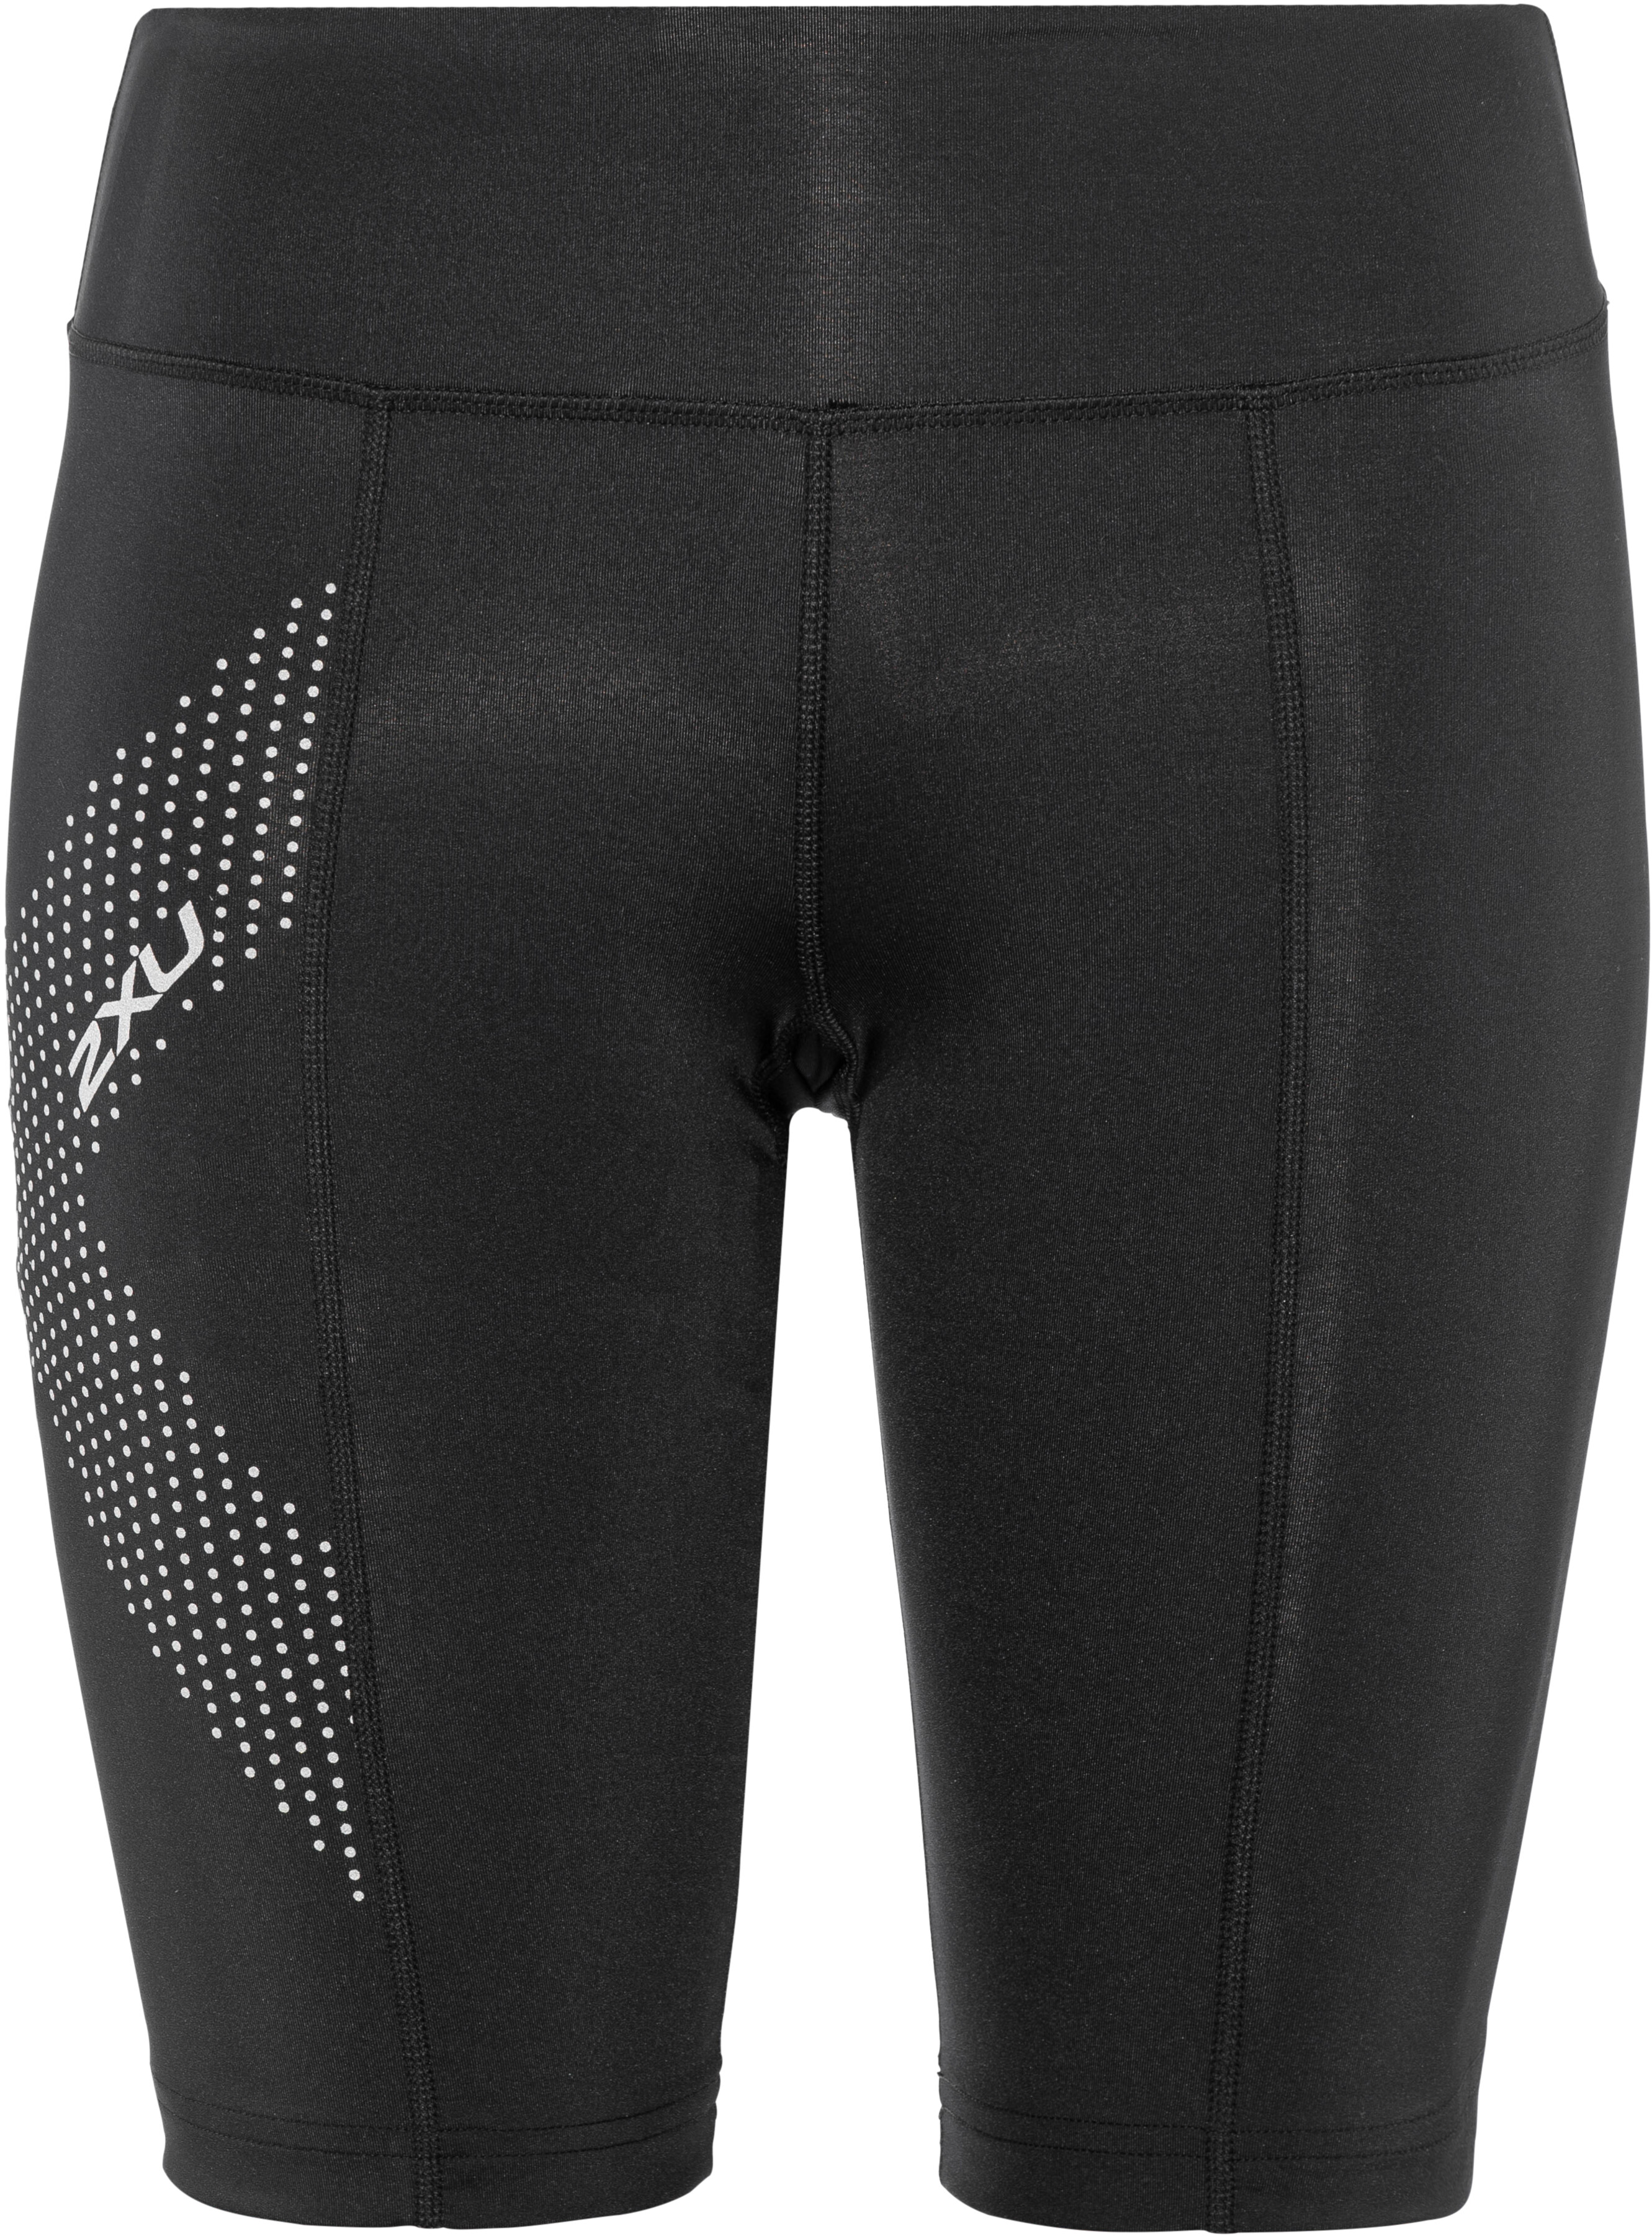 ac8a211c 2XU Compression Shorts Mid-Rise Women black/dotted reflective logo ...